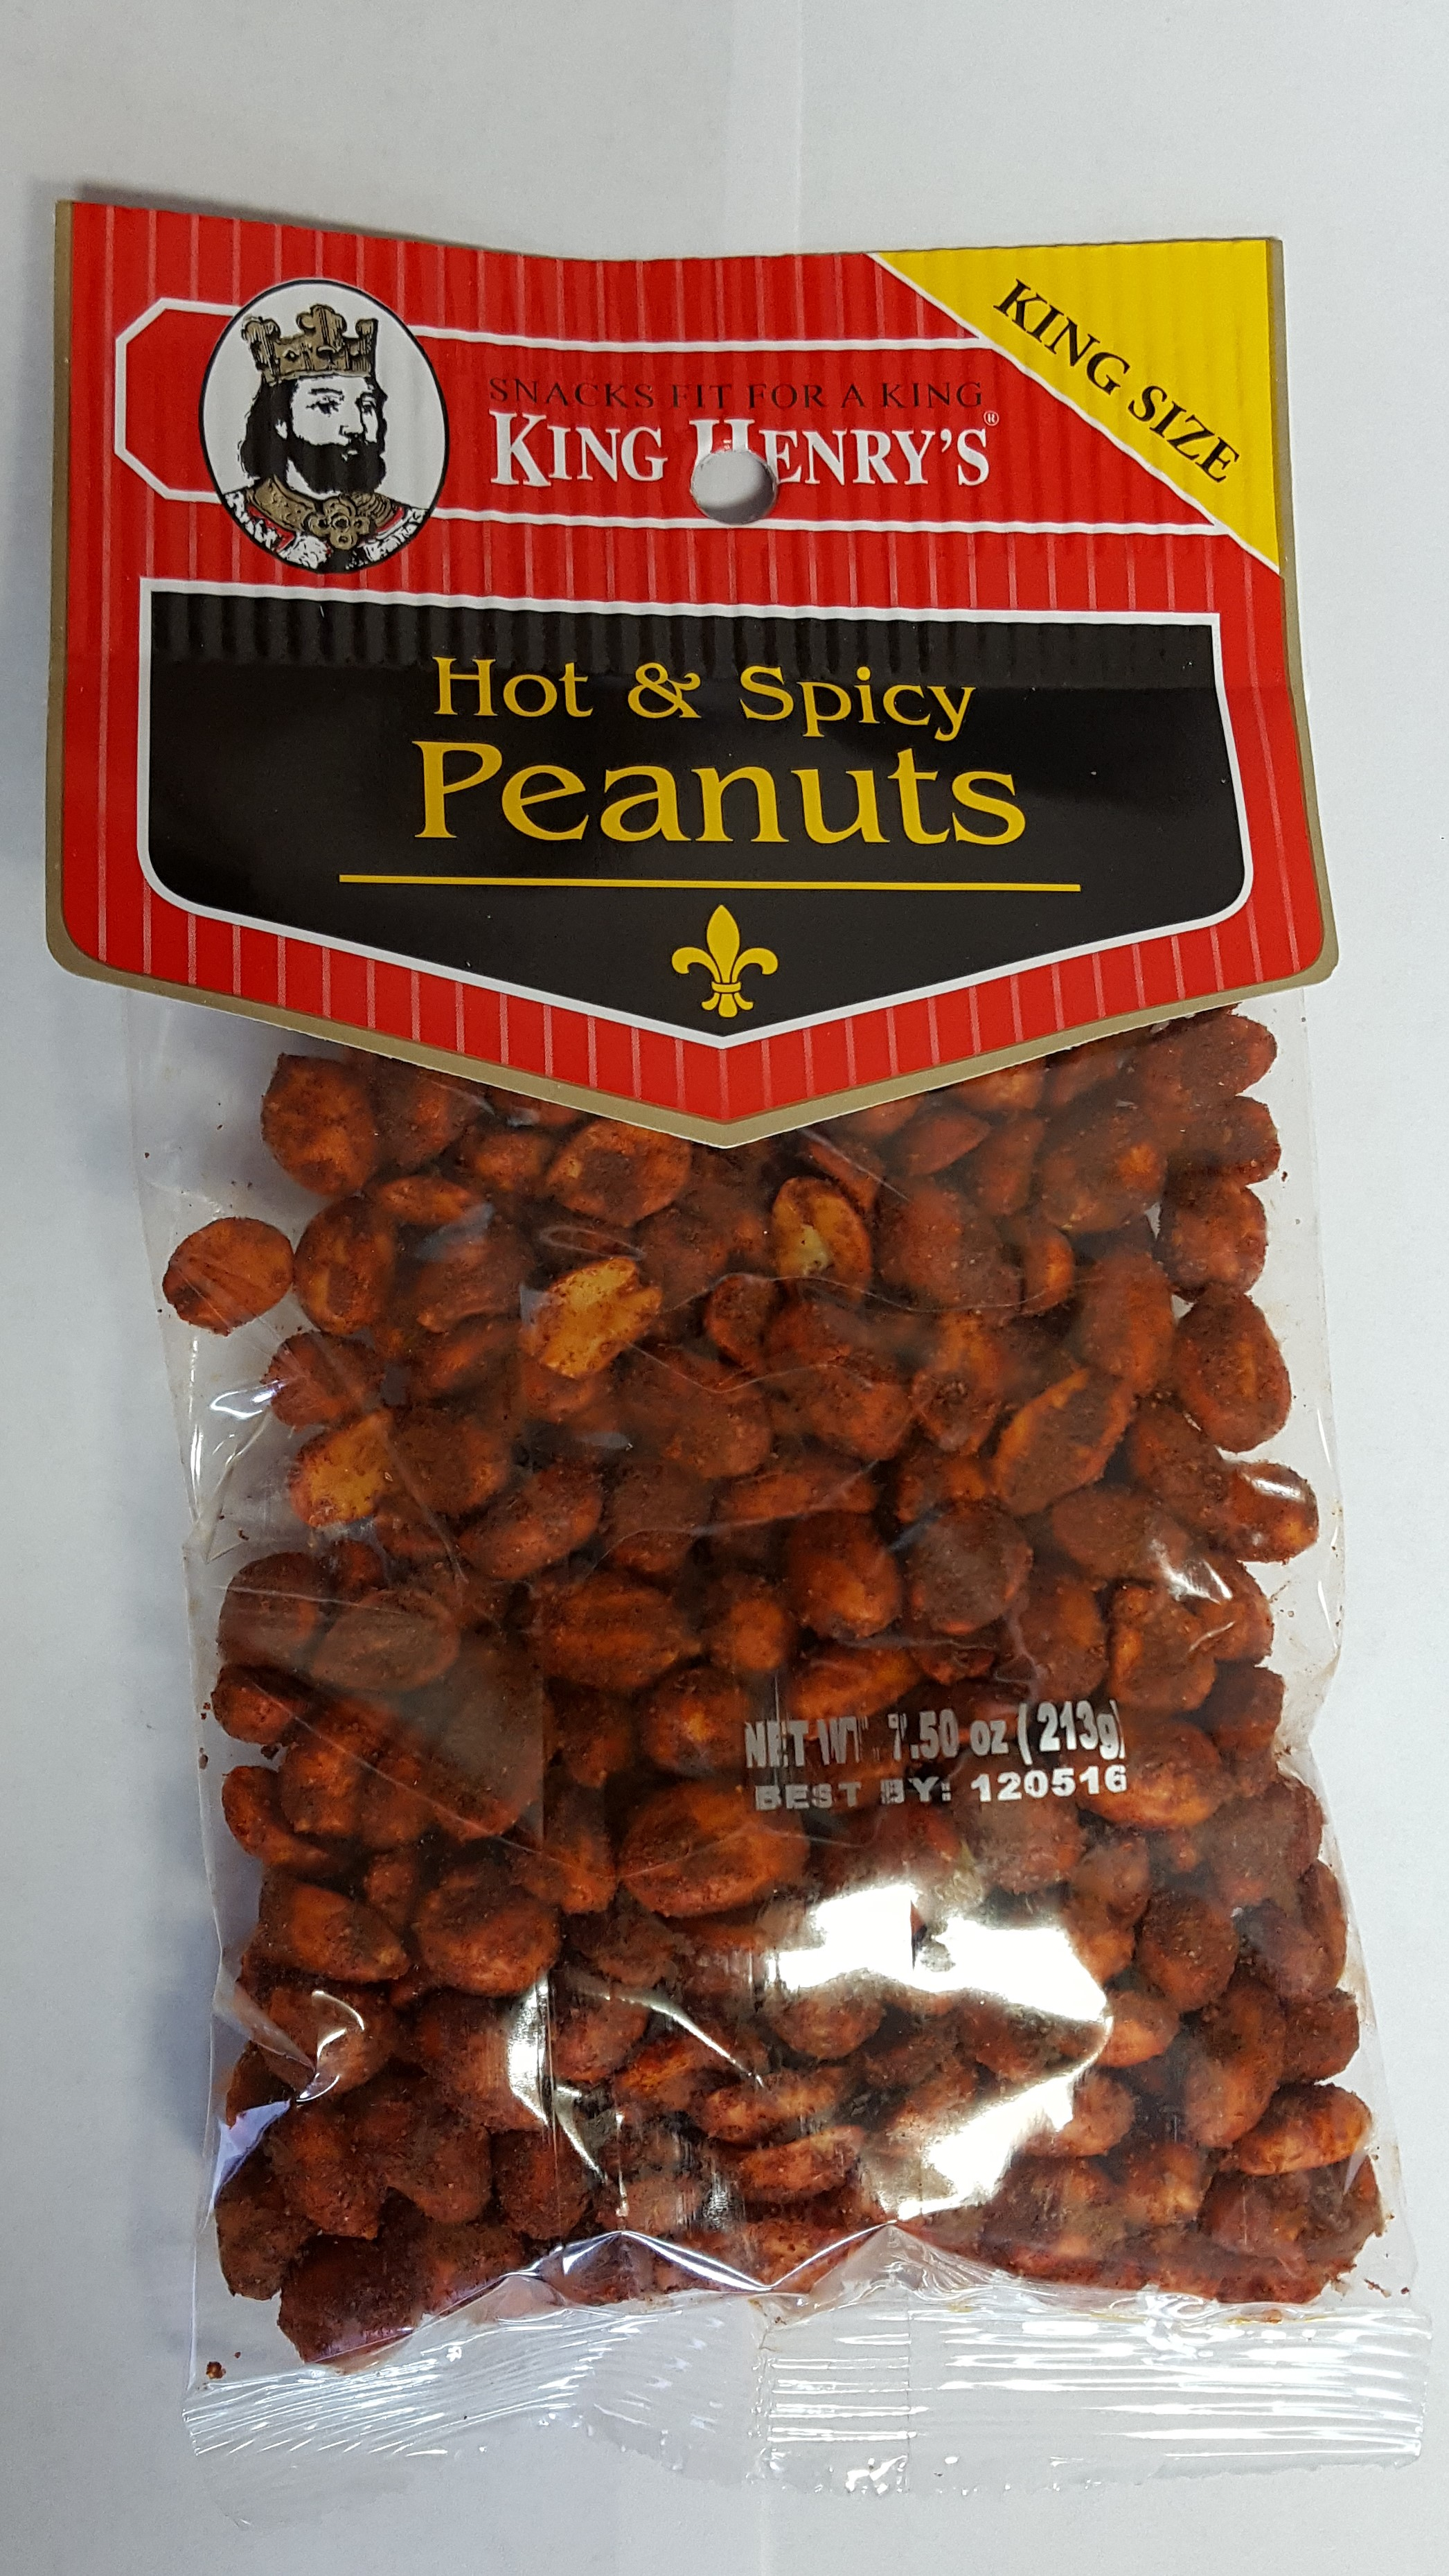 King Henry's Peanuts Hot & Spicy